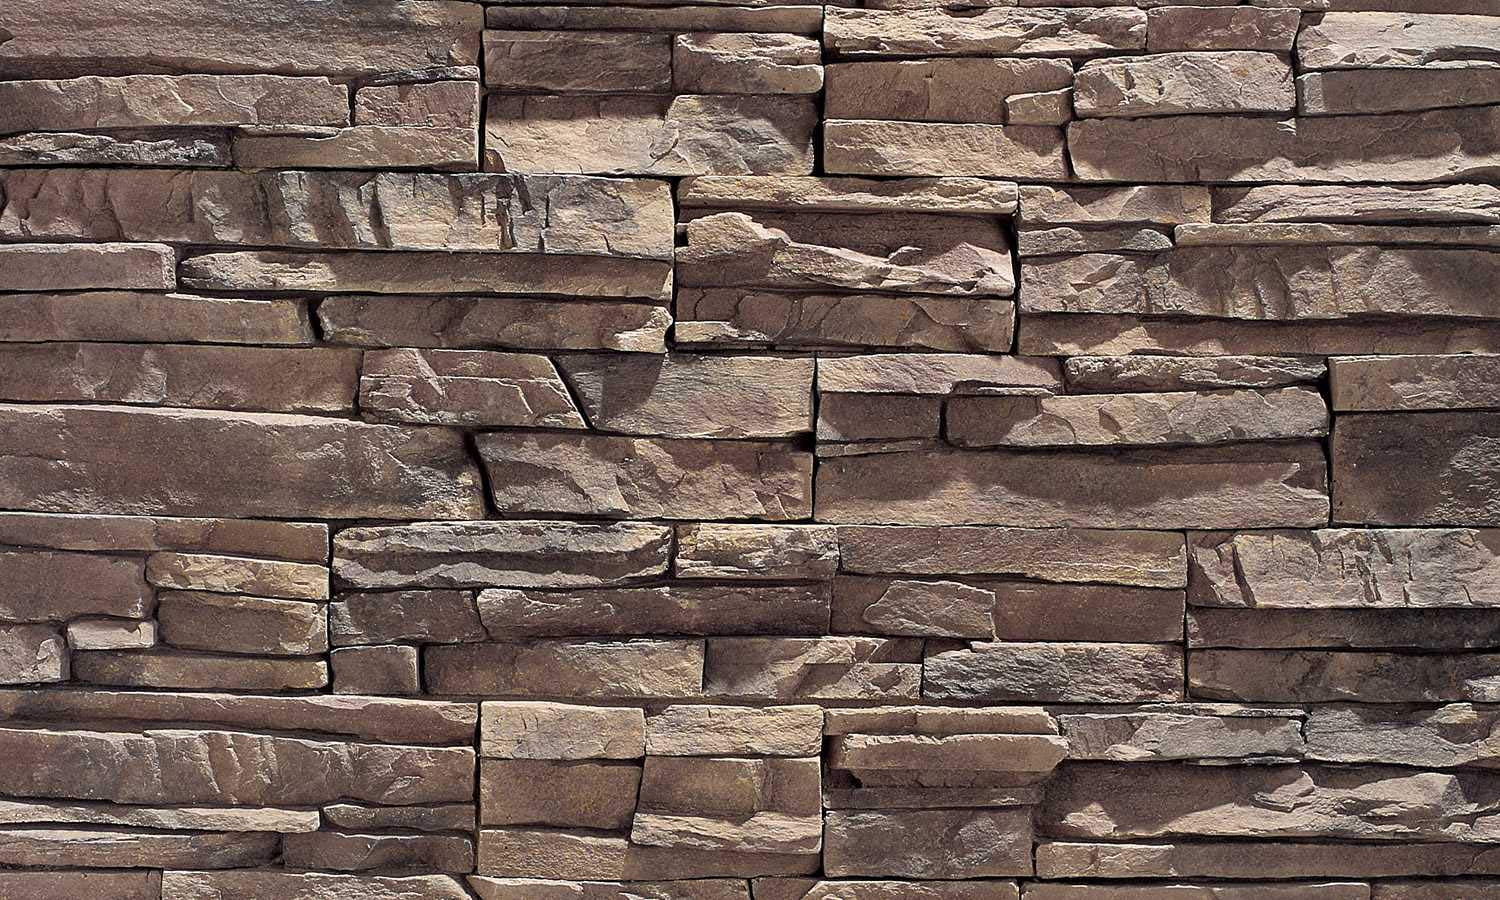 ES_Stacked Stone_Stanta Fe_prof_nationwide